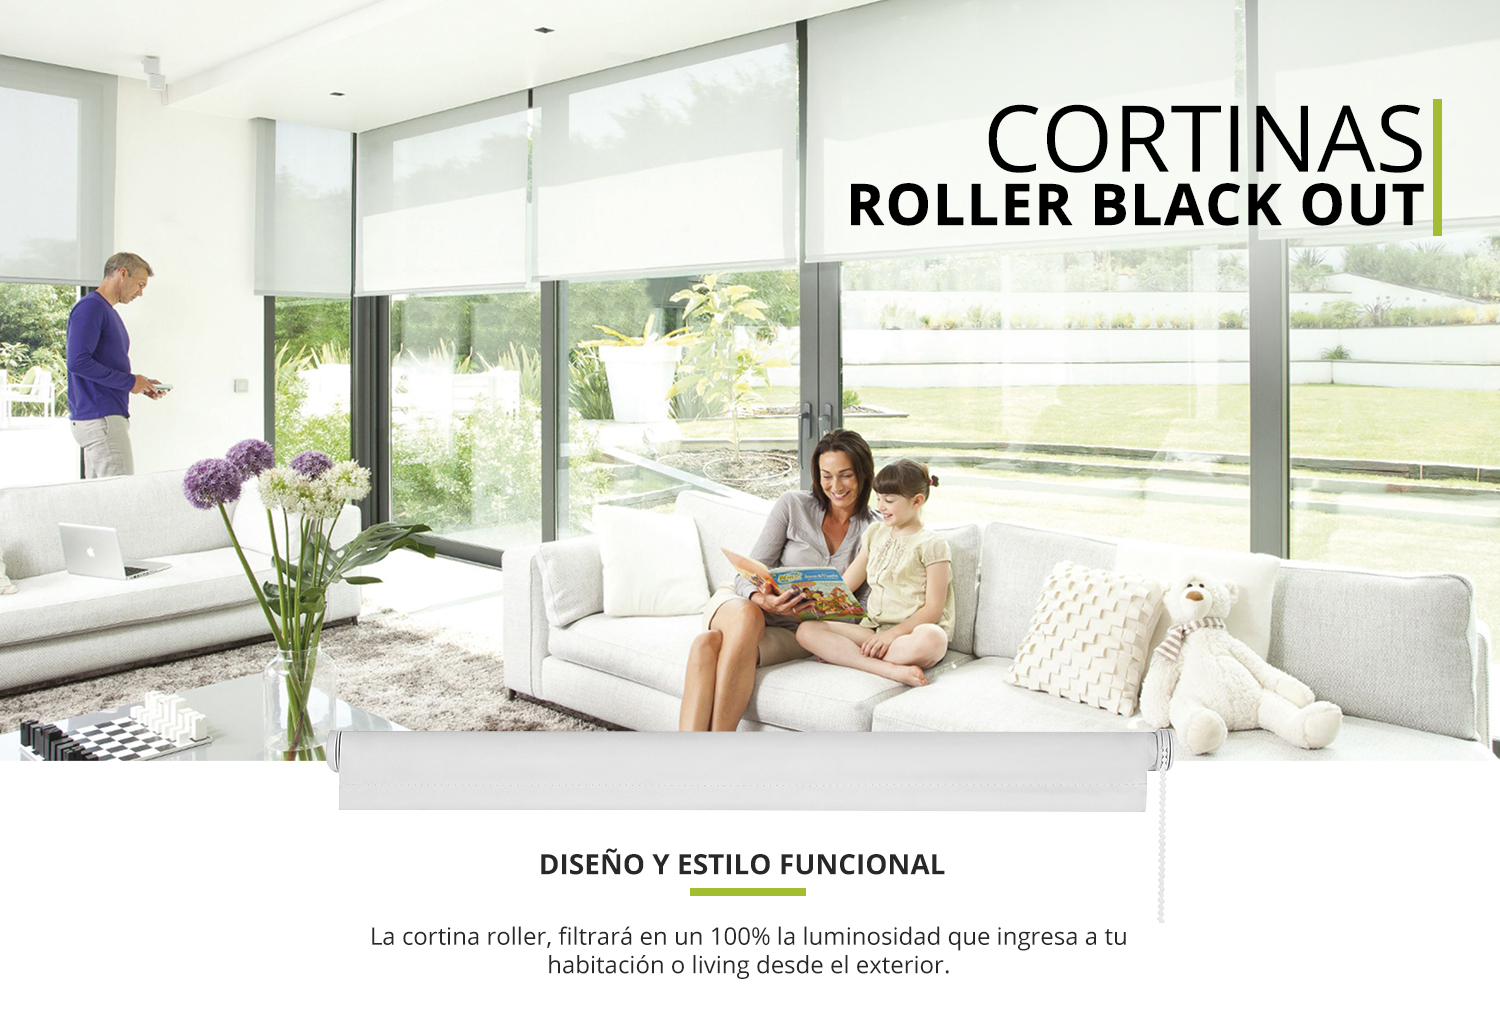 Cortina roller Black out